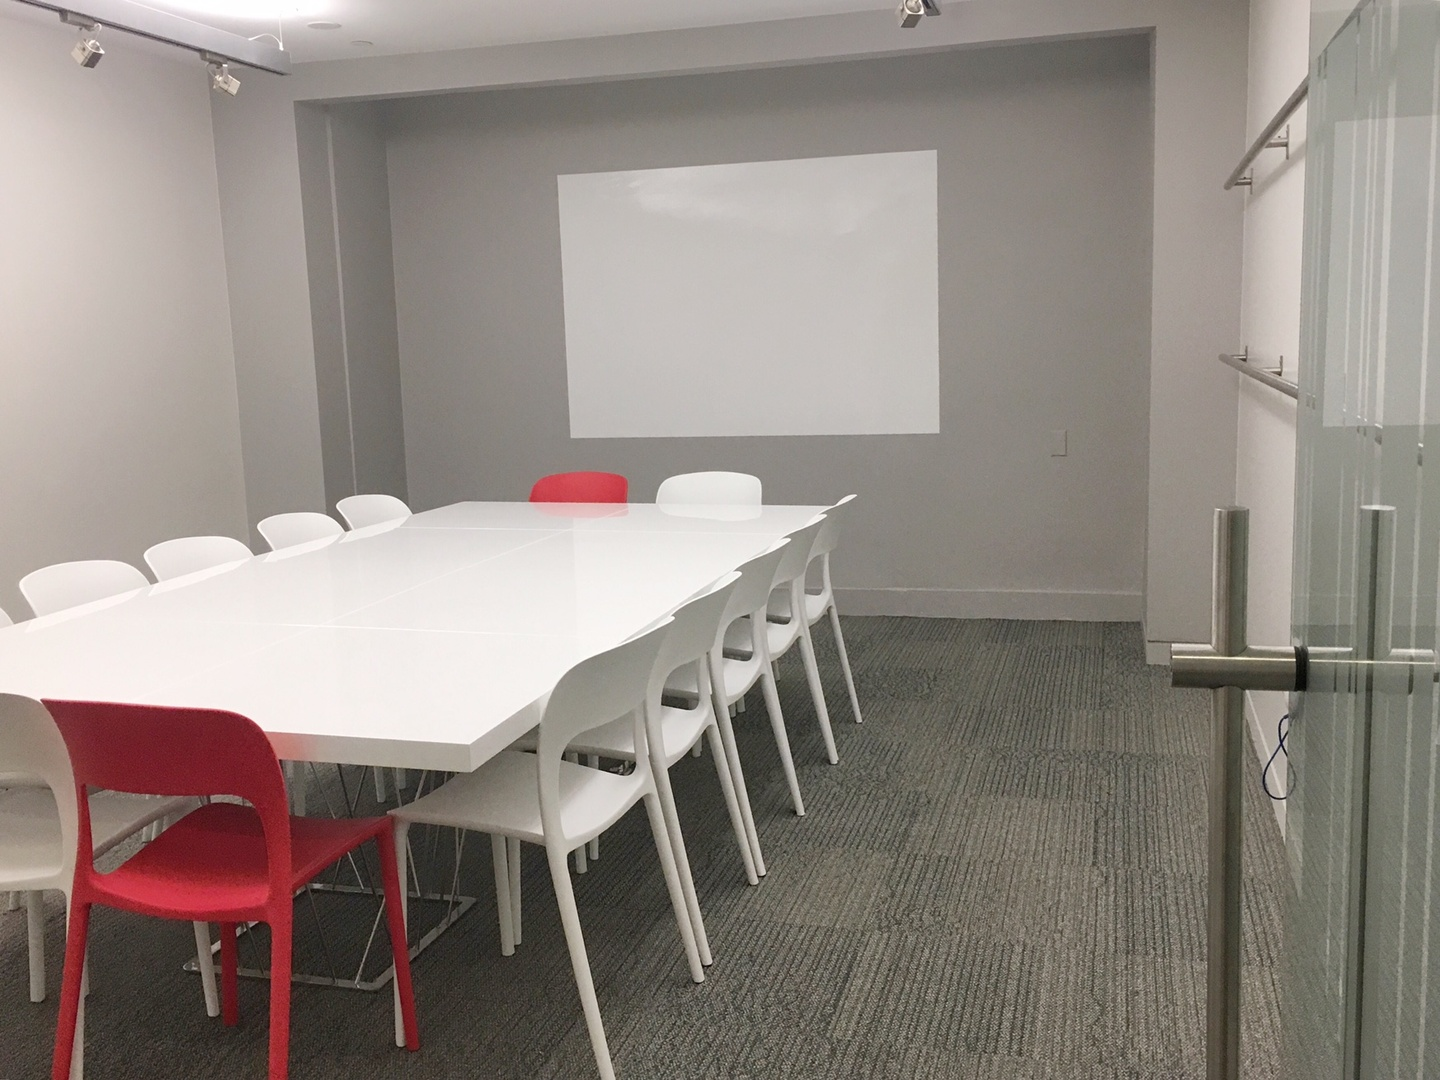 NYC conference rooms Salle de réunion Space530 - The Square image 4